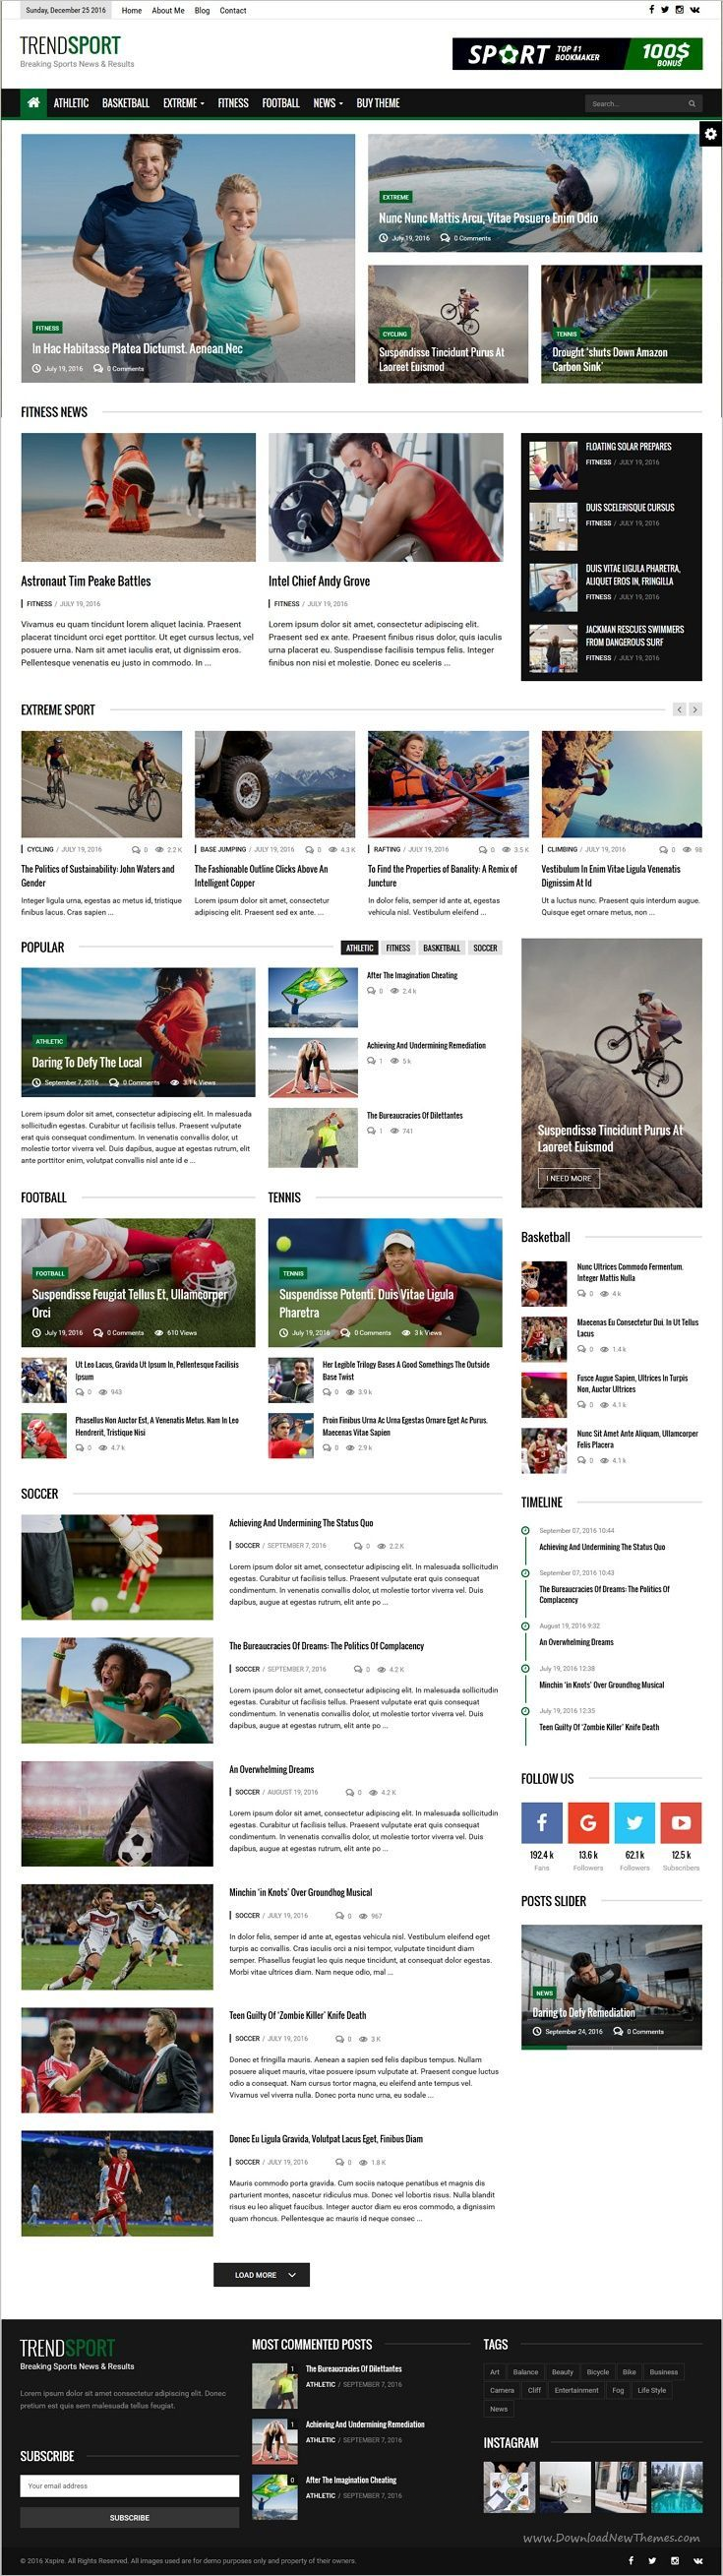 Trend is an amazing responsive #WordPress template for #sports #Newspaper, blog and #magazine website with 6 niche homepage layouts download now➩  https://themeforest.net/item/trend-news-responsive-magazine-theme/18620258?ref=Datasata Está farto de procurar por templates WordPress? Fizemos um E-Book GRATUITO com OS 150 MELHORES TEMPLATES WORDPRESS. Clique aqui http://www.estrategiadigital.pt/150-melhores-templates-wordpress/ para fazer download imediato!